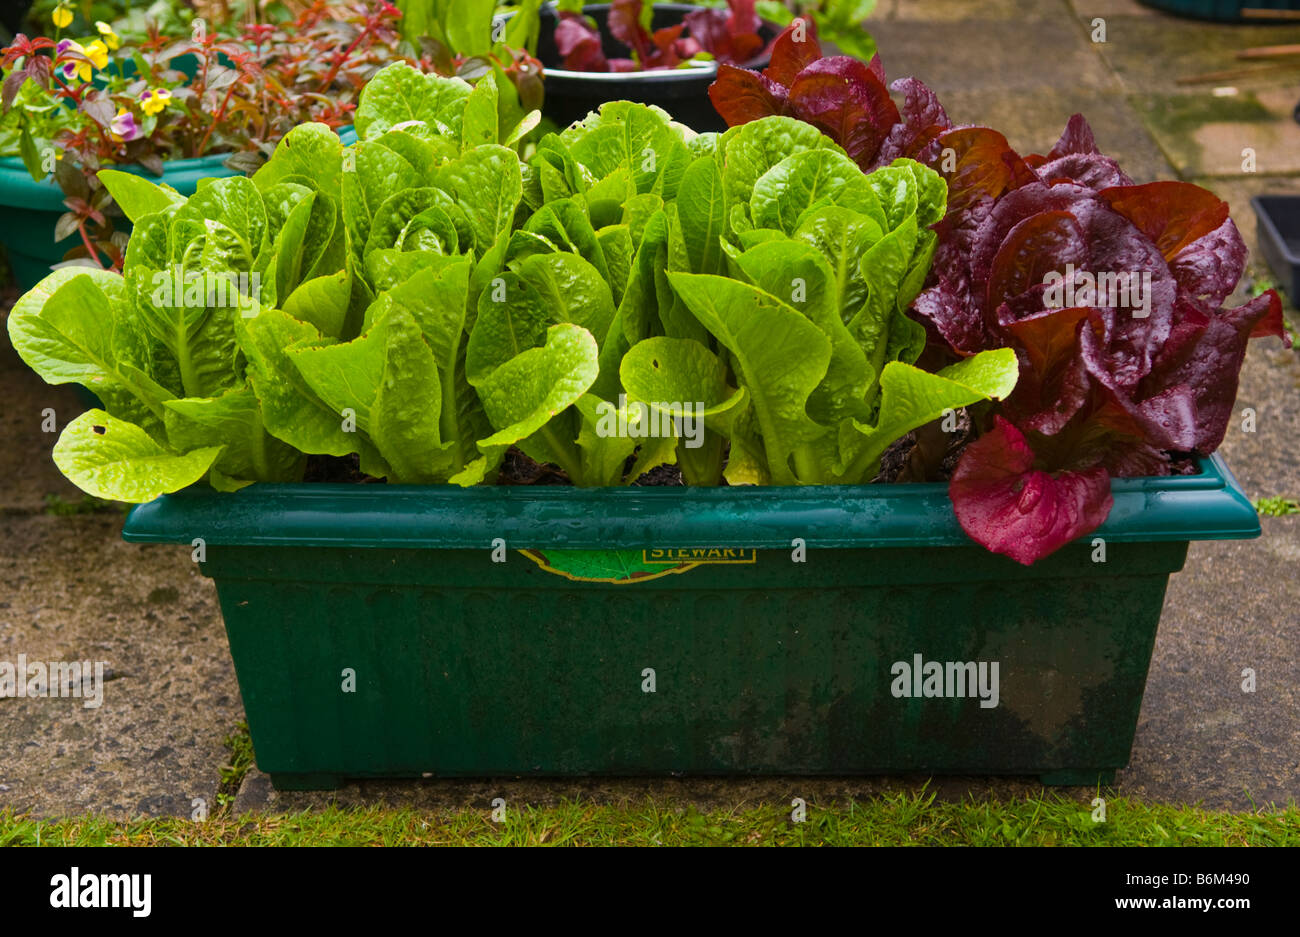 Lettuce Being Grown In Containers Small Urban Garden UK